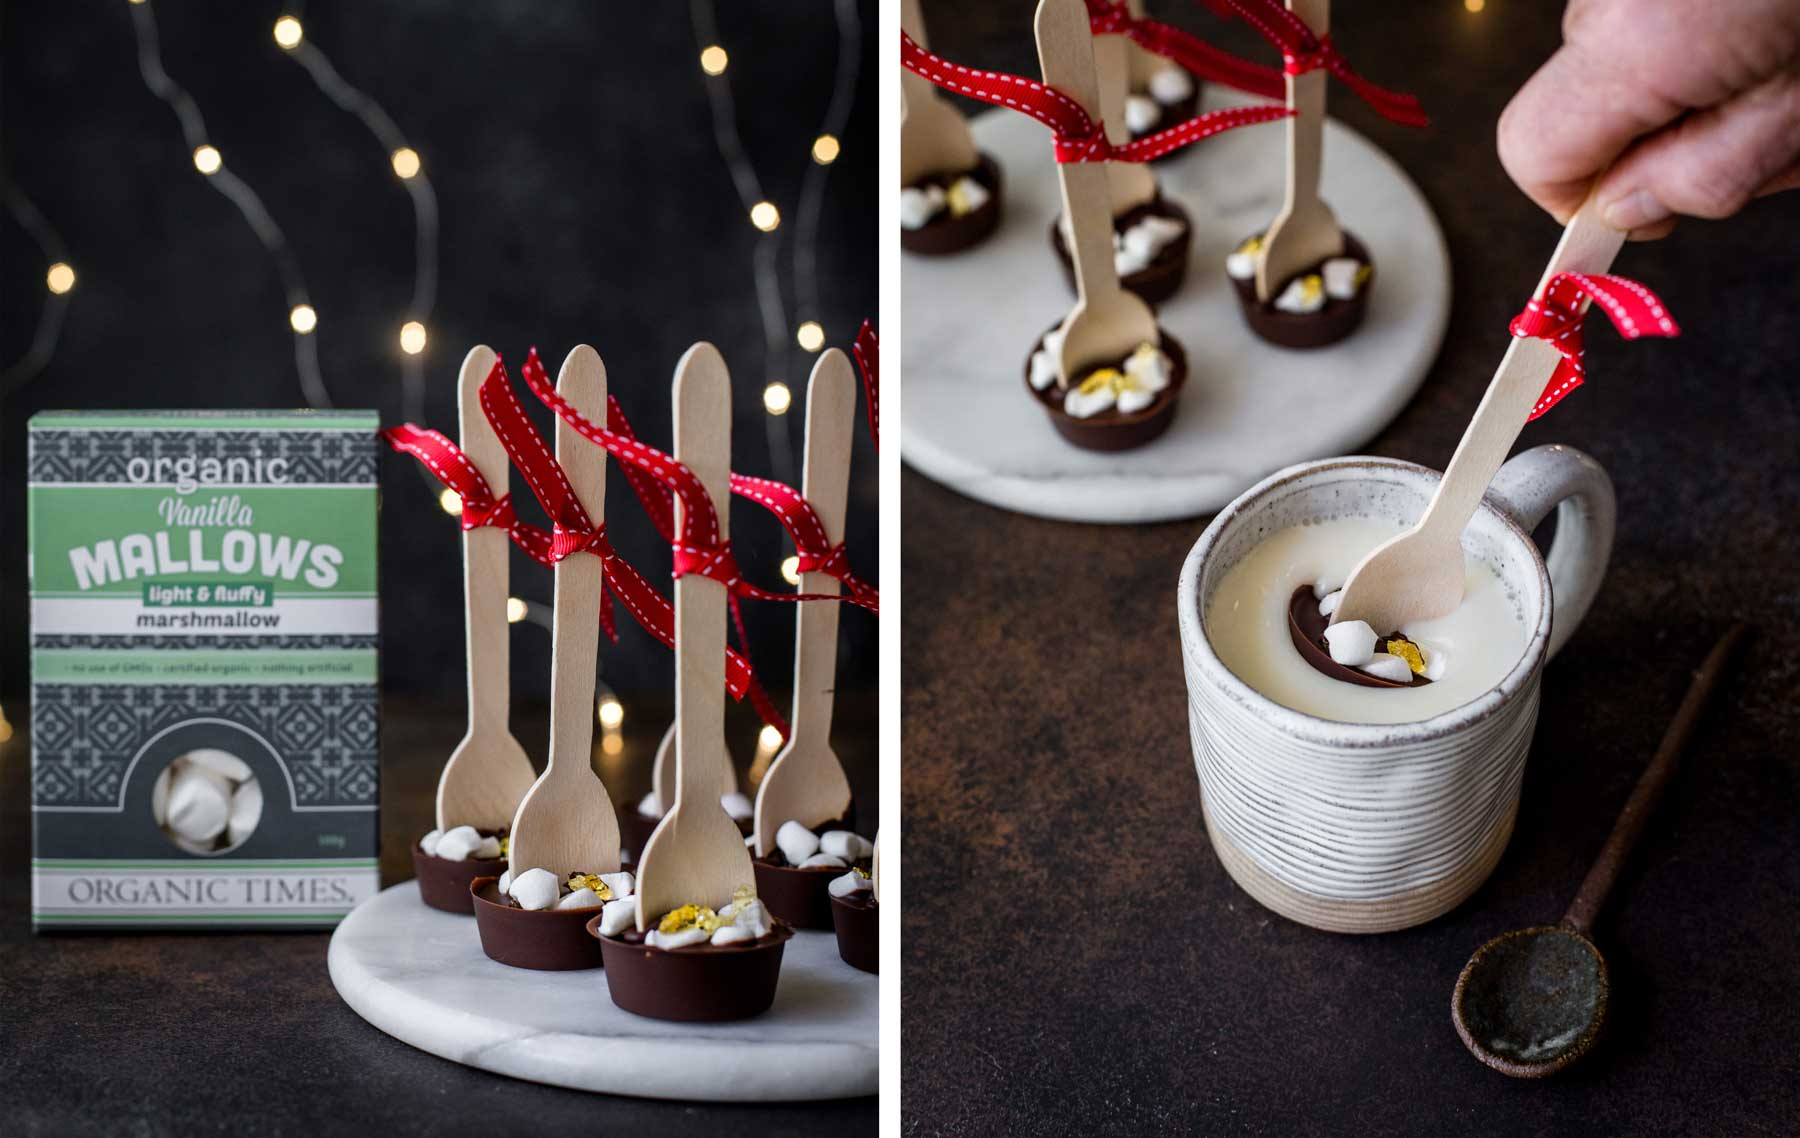 Hot Chocolate Spoons on a marble board next to Organic Times Marshmallows